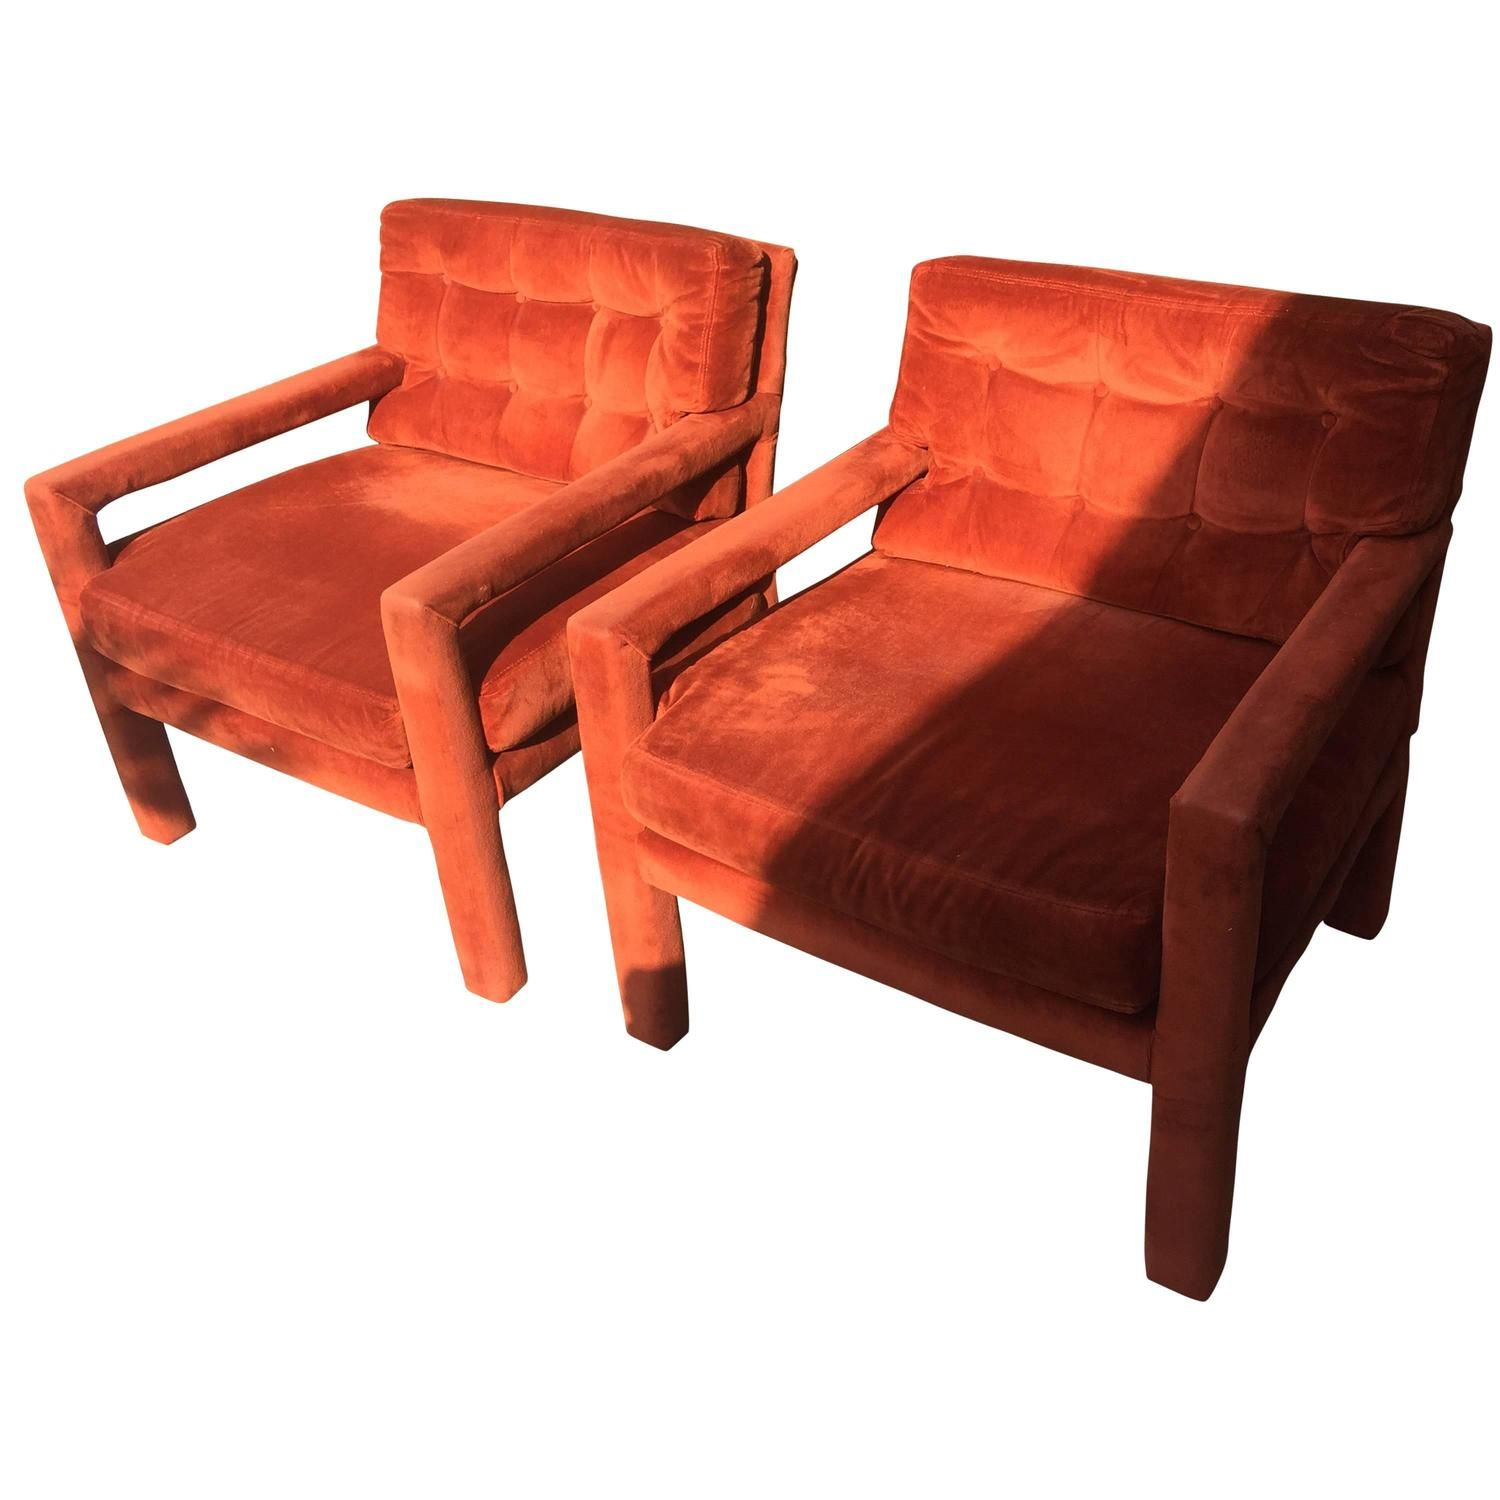 Pair Of Milo Baughman Tufted Mid Century Modern Parsons Armchairs Chairs